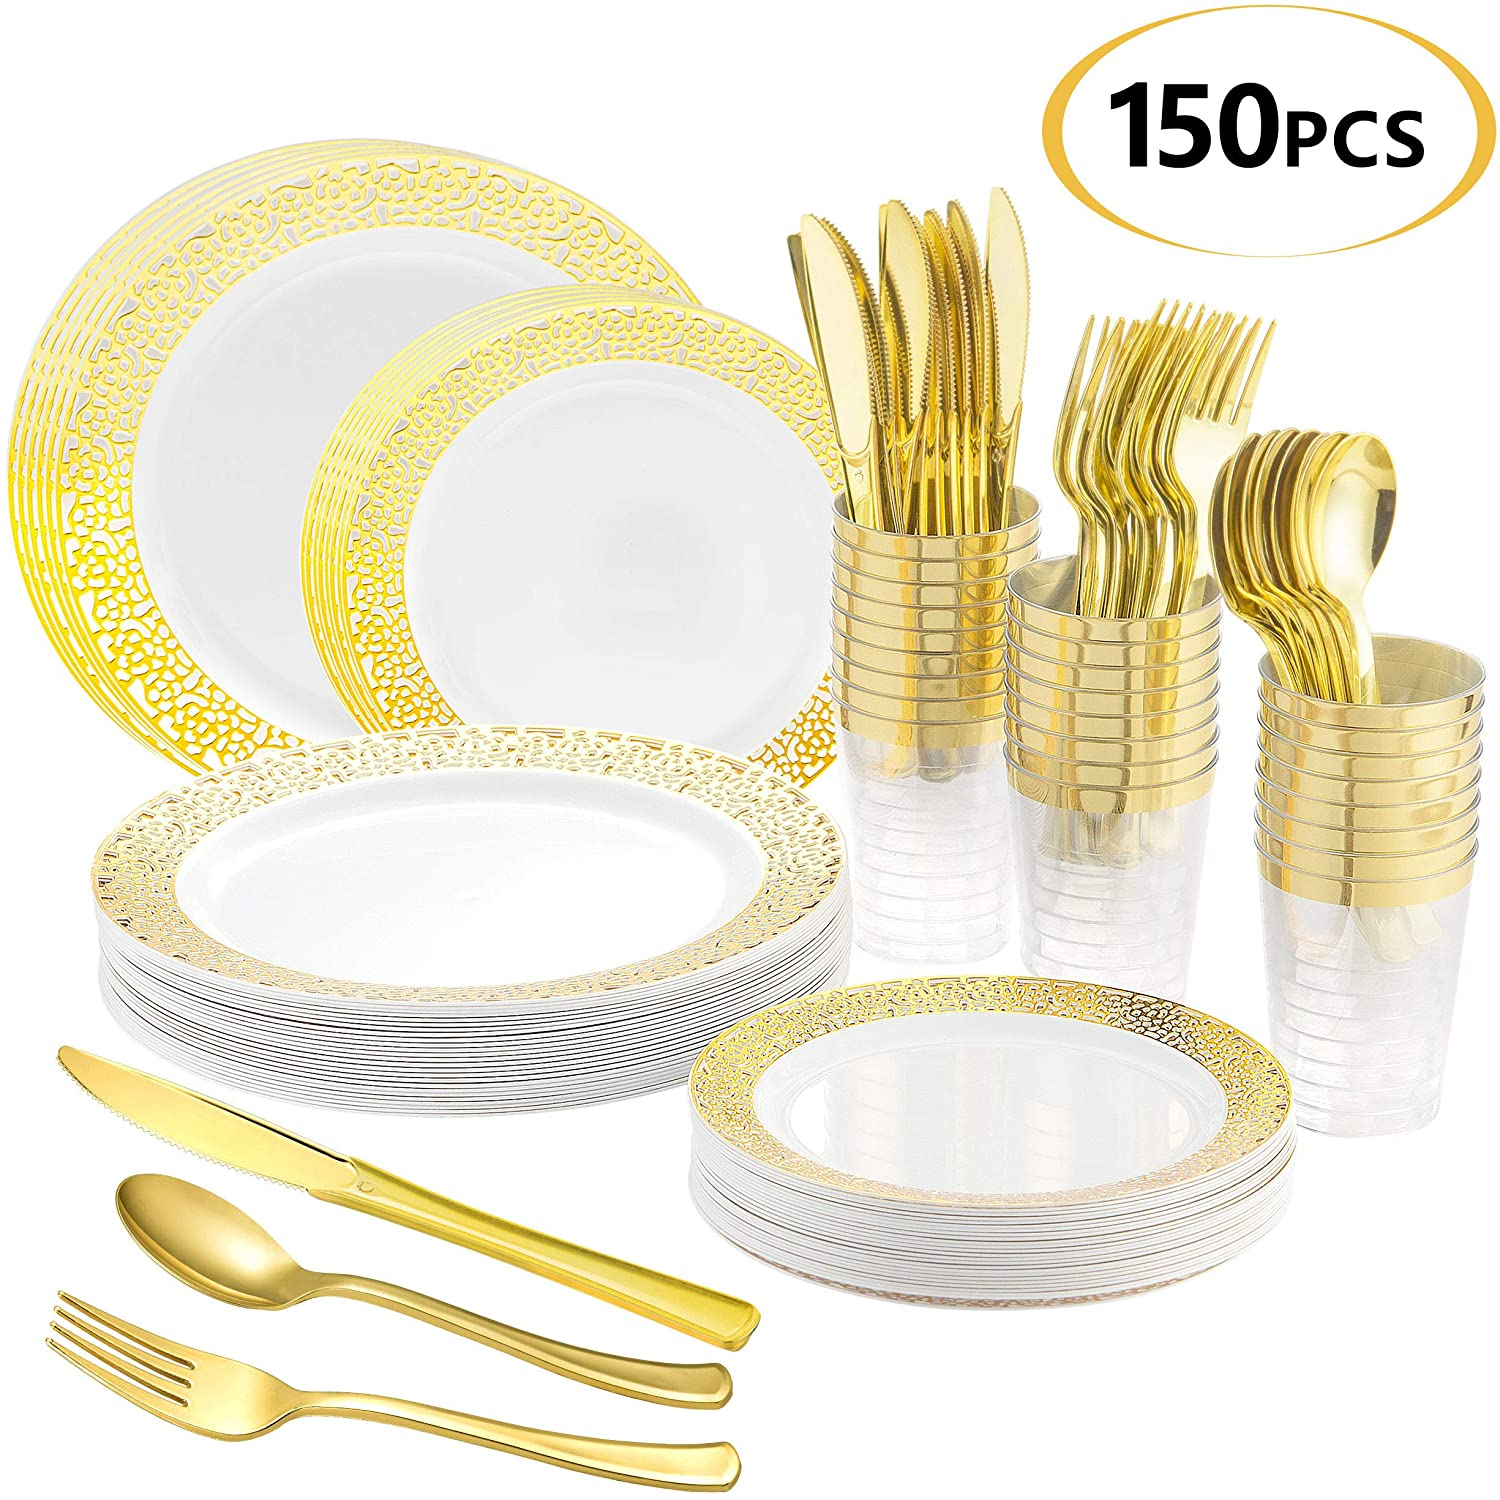 JENYA Golden Disposable Plastic Tableware Set - Party 25 Pieces Tableware Wedding Dining Elegant Cup Plate Mini Knife Fork Spoon Selection